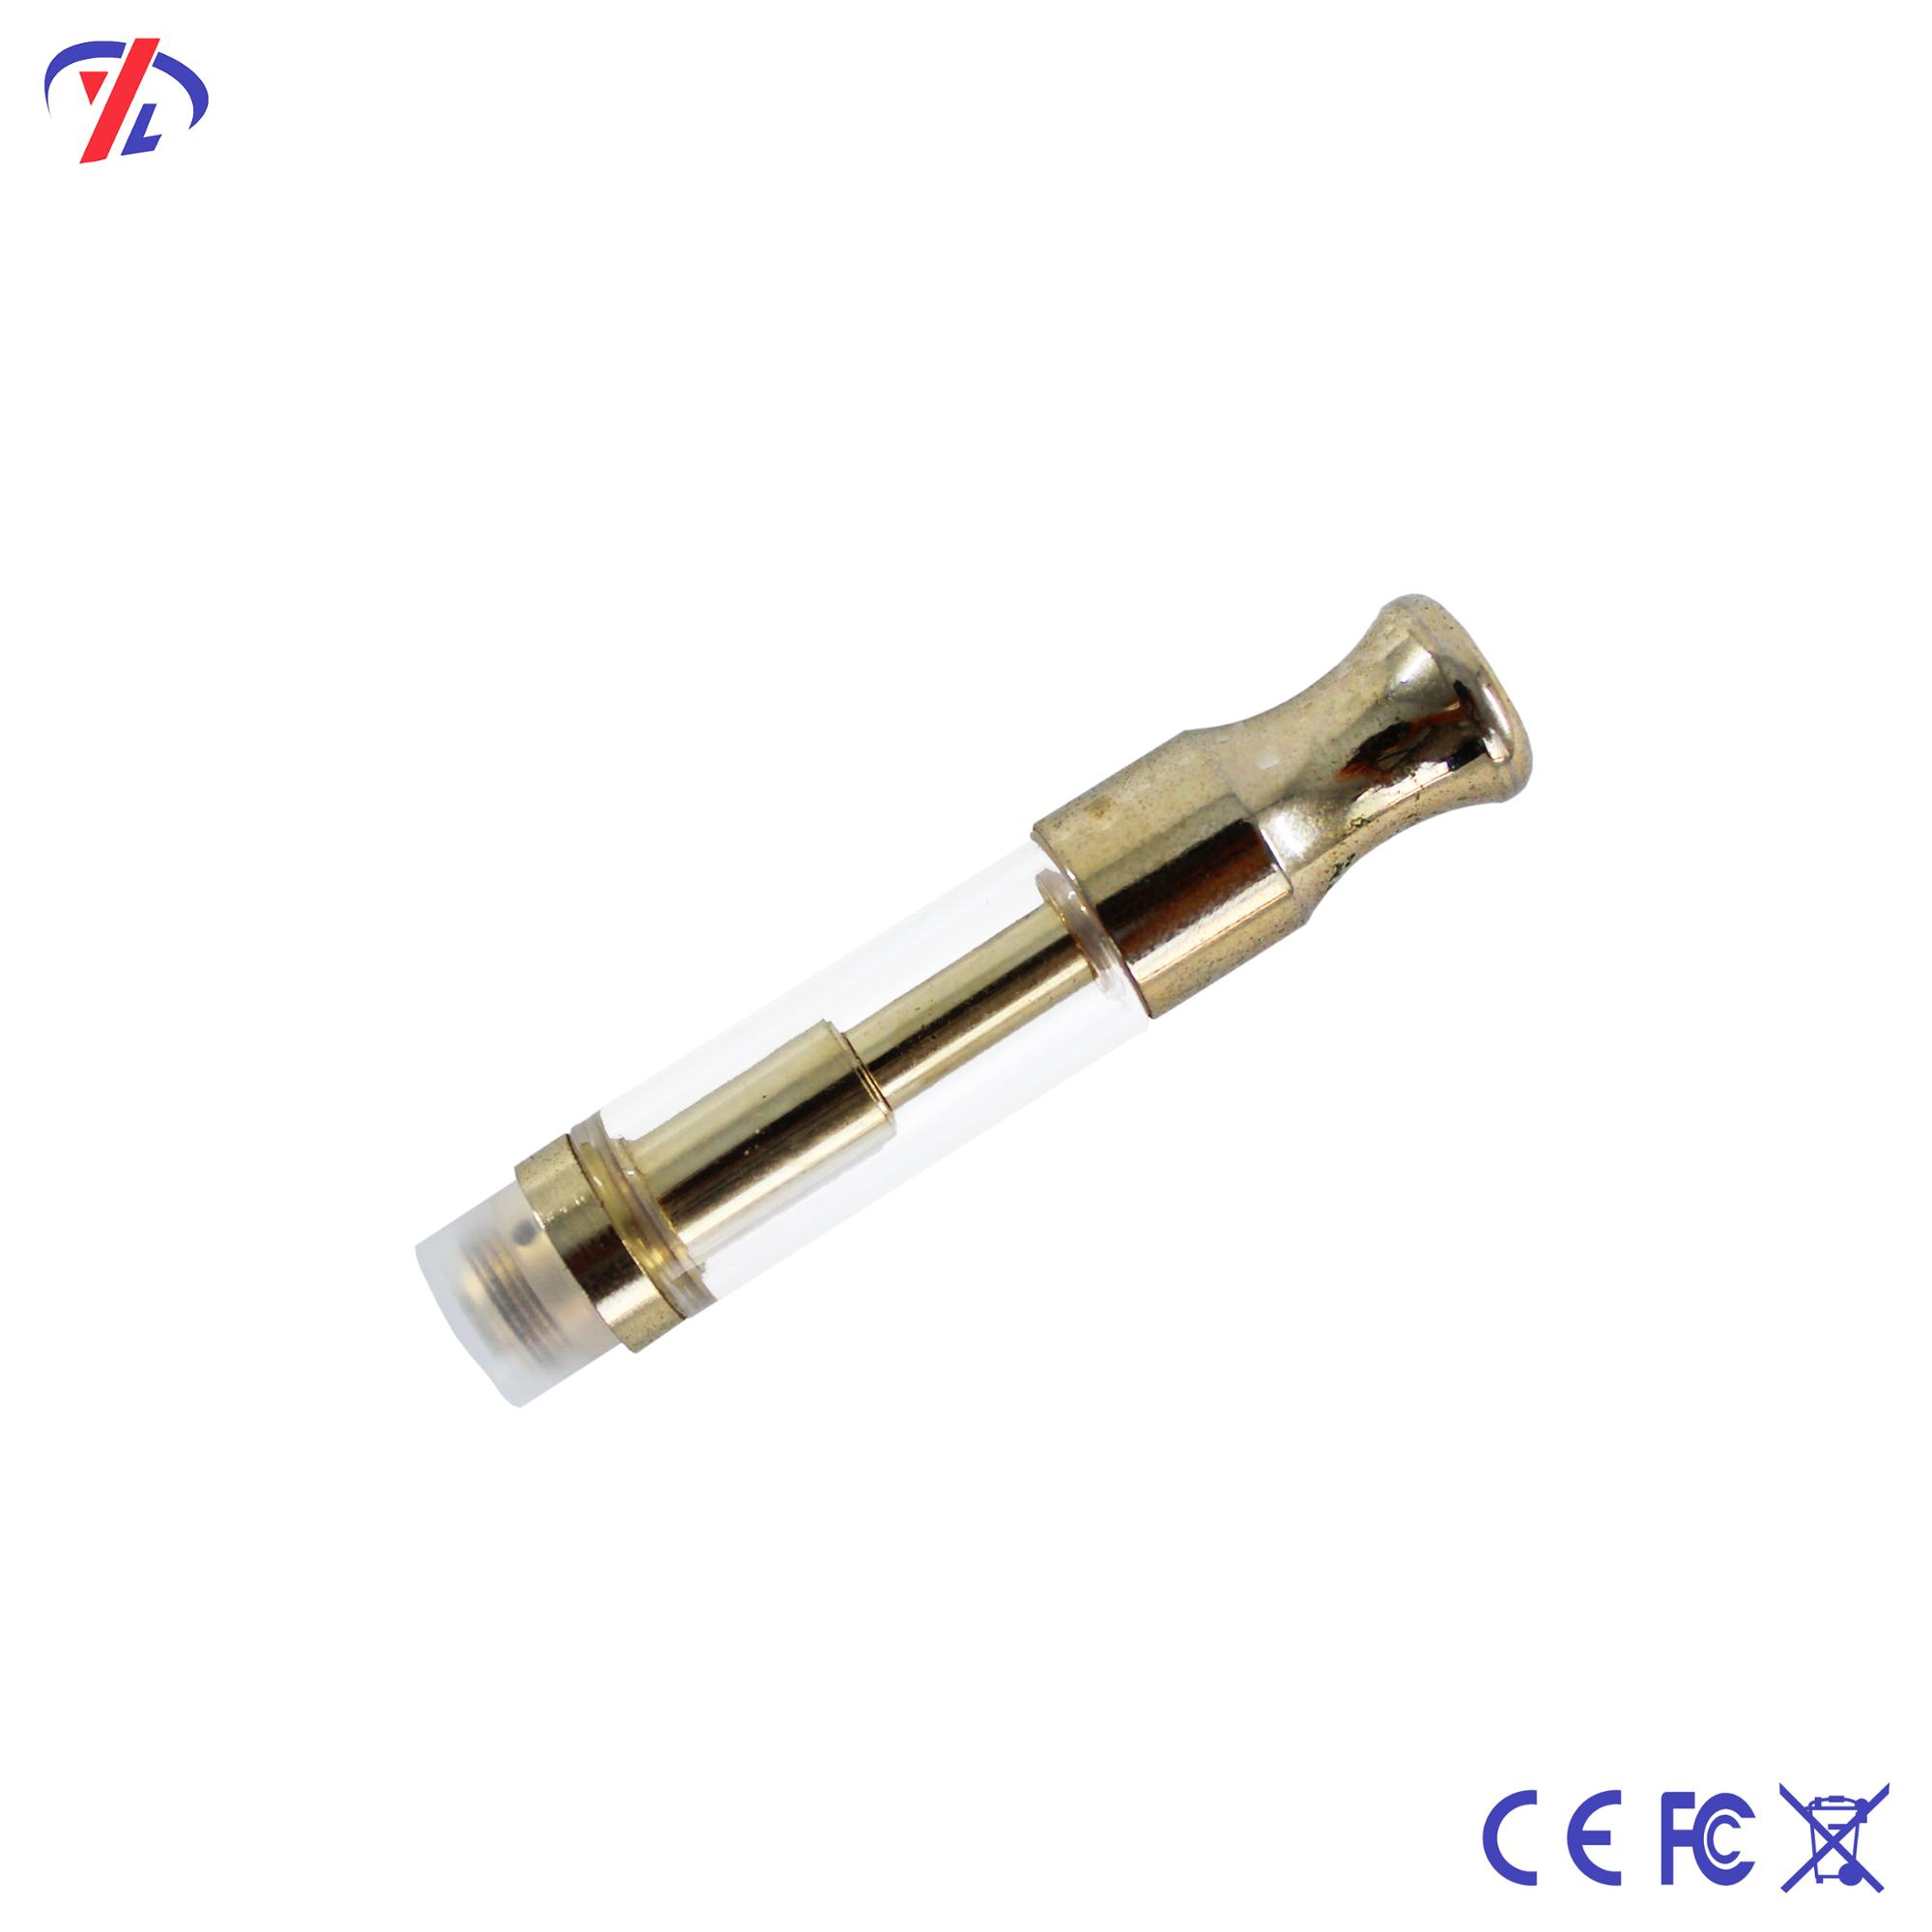 Anti leakage newest product CBD oil ceramic coil glass cartridge